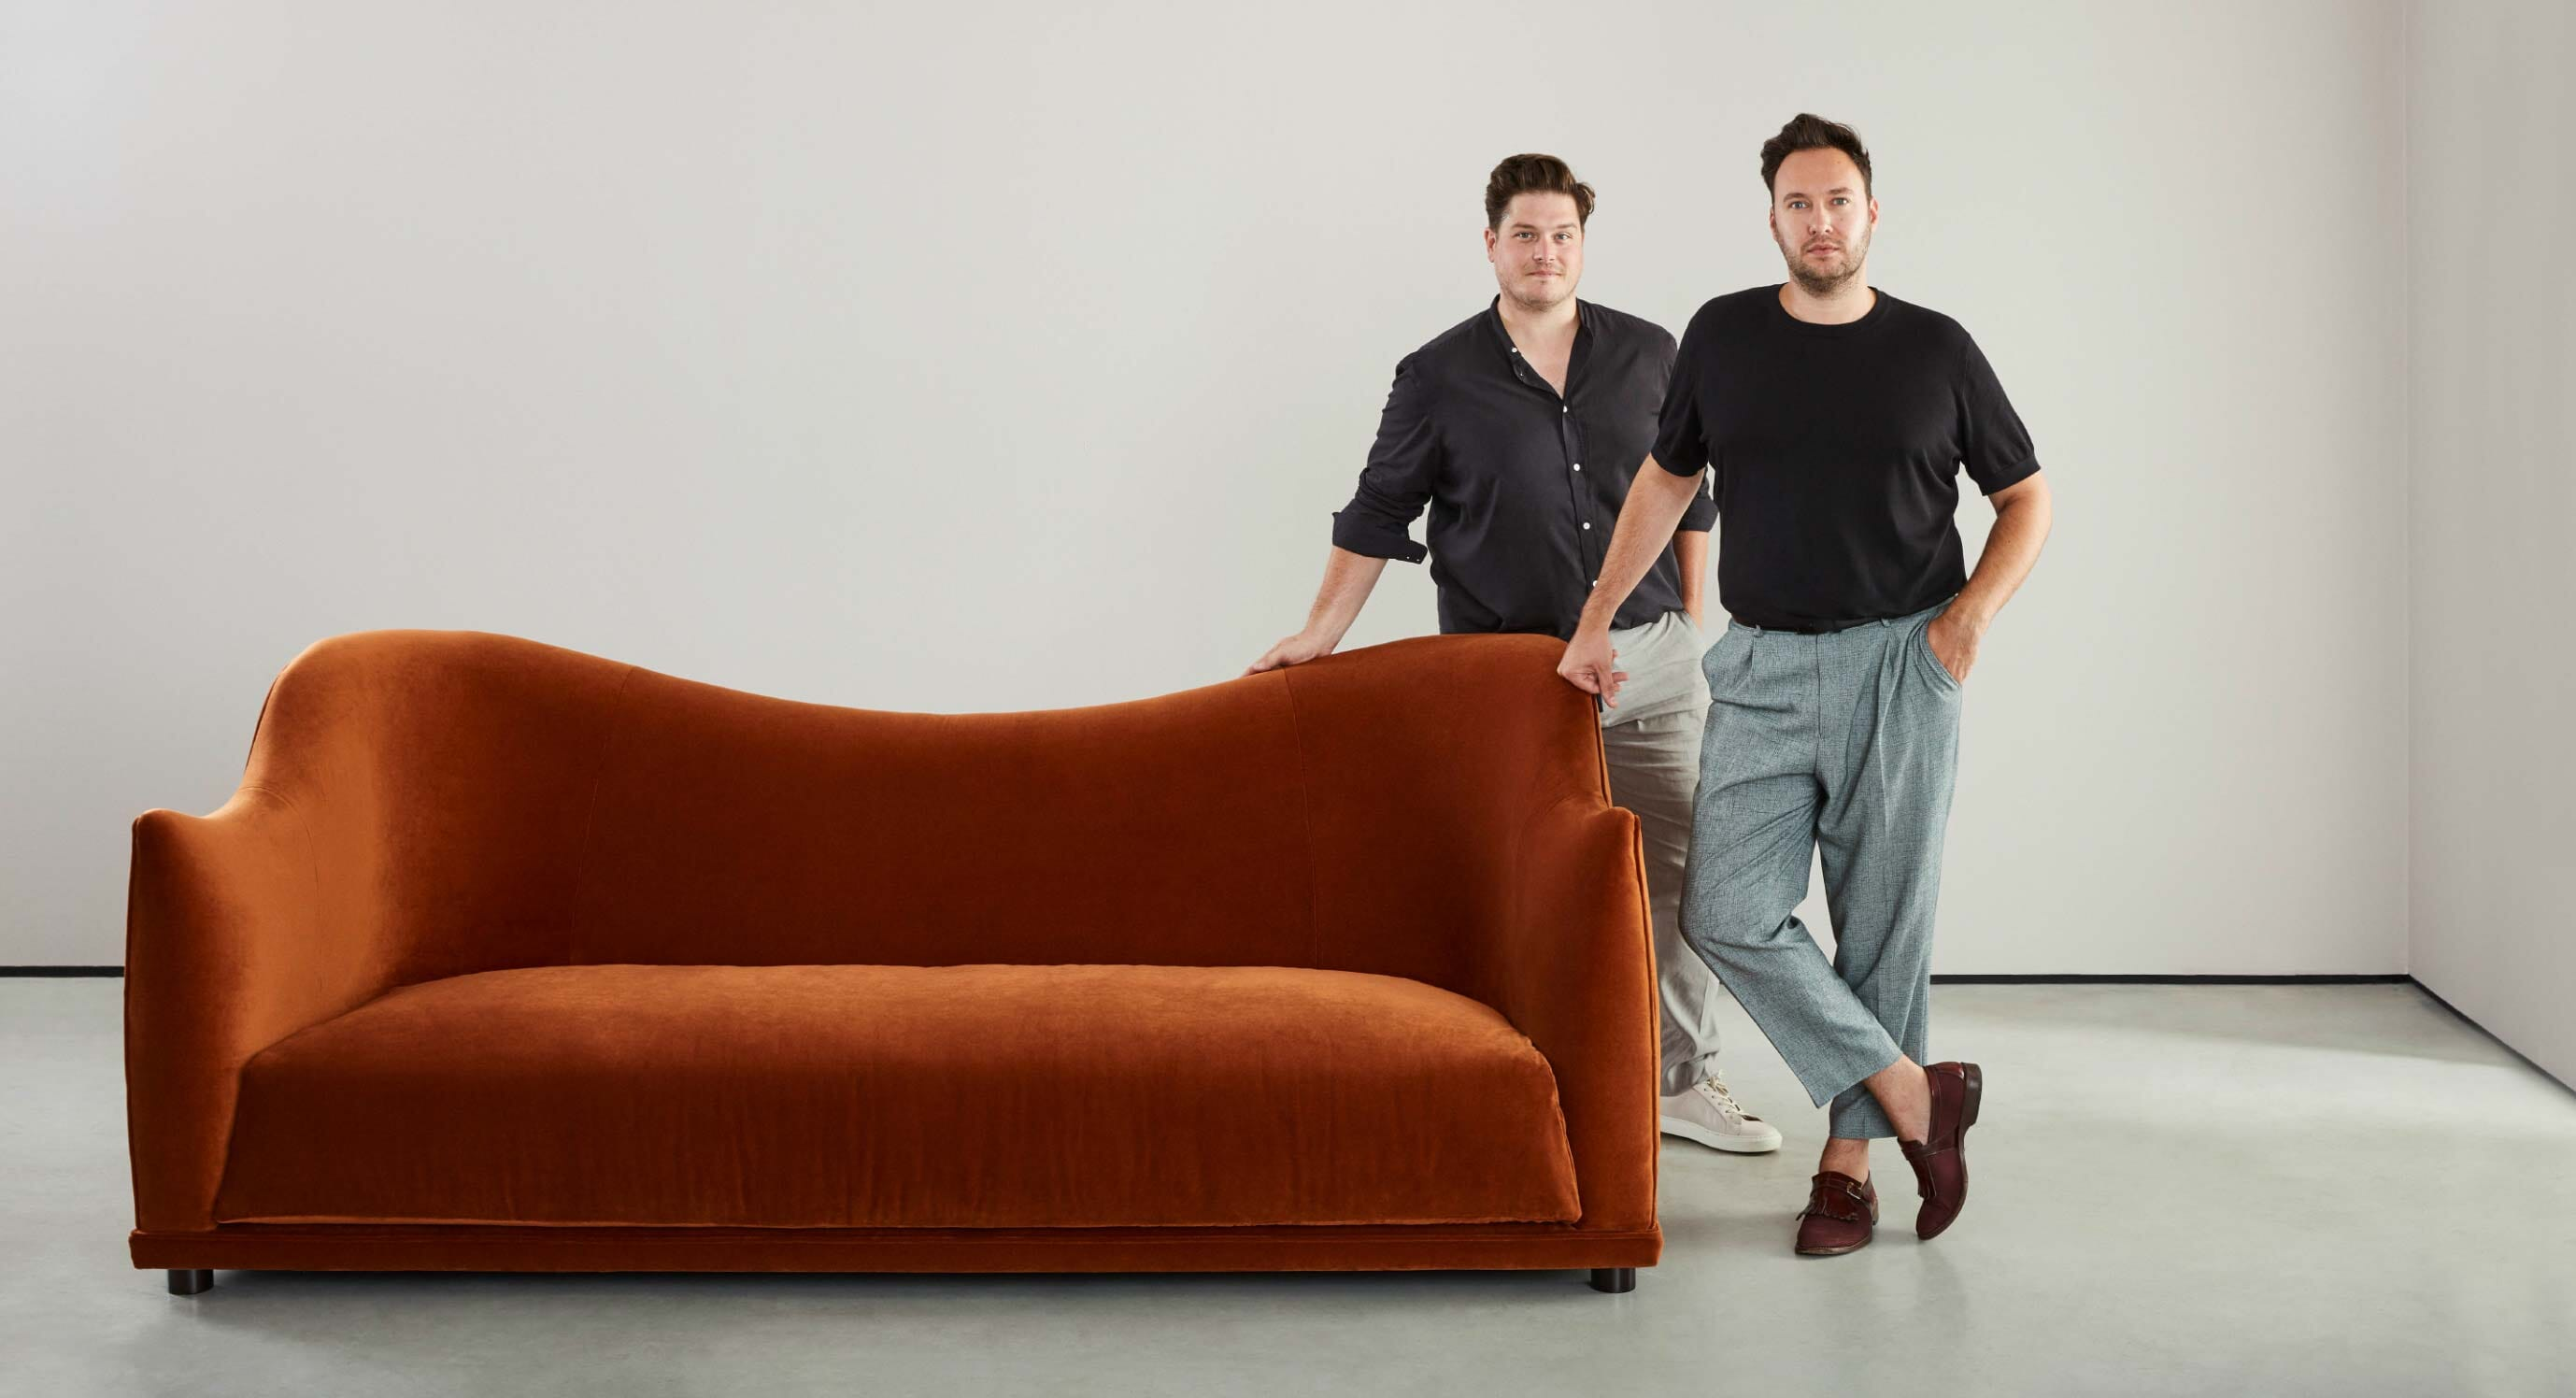 Design Firsts… with Jordan & Russell of 2LG Studio